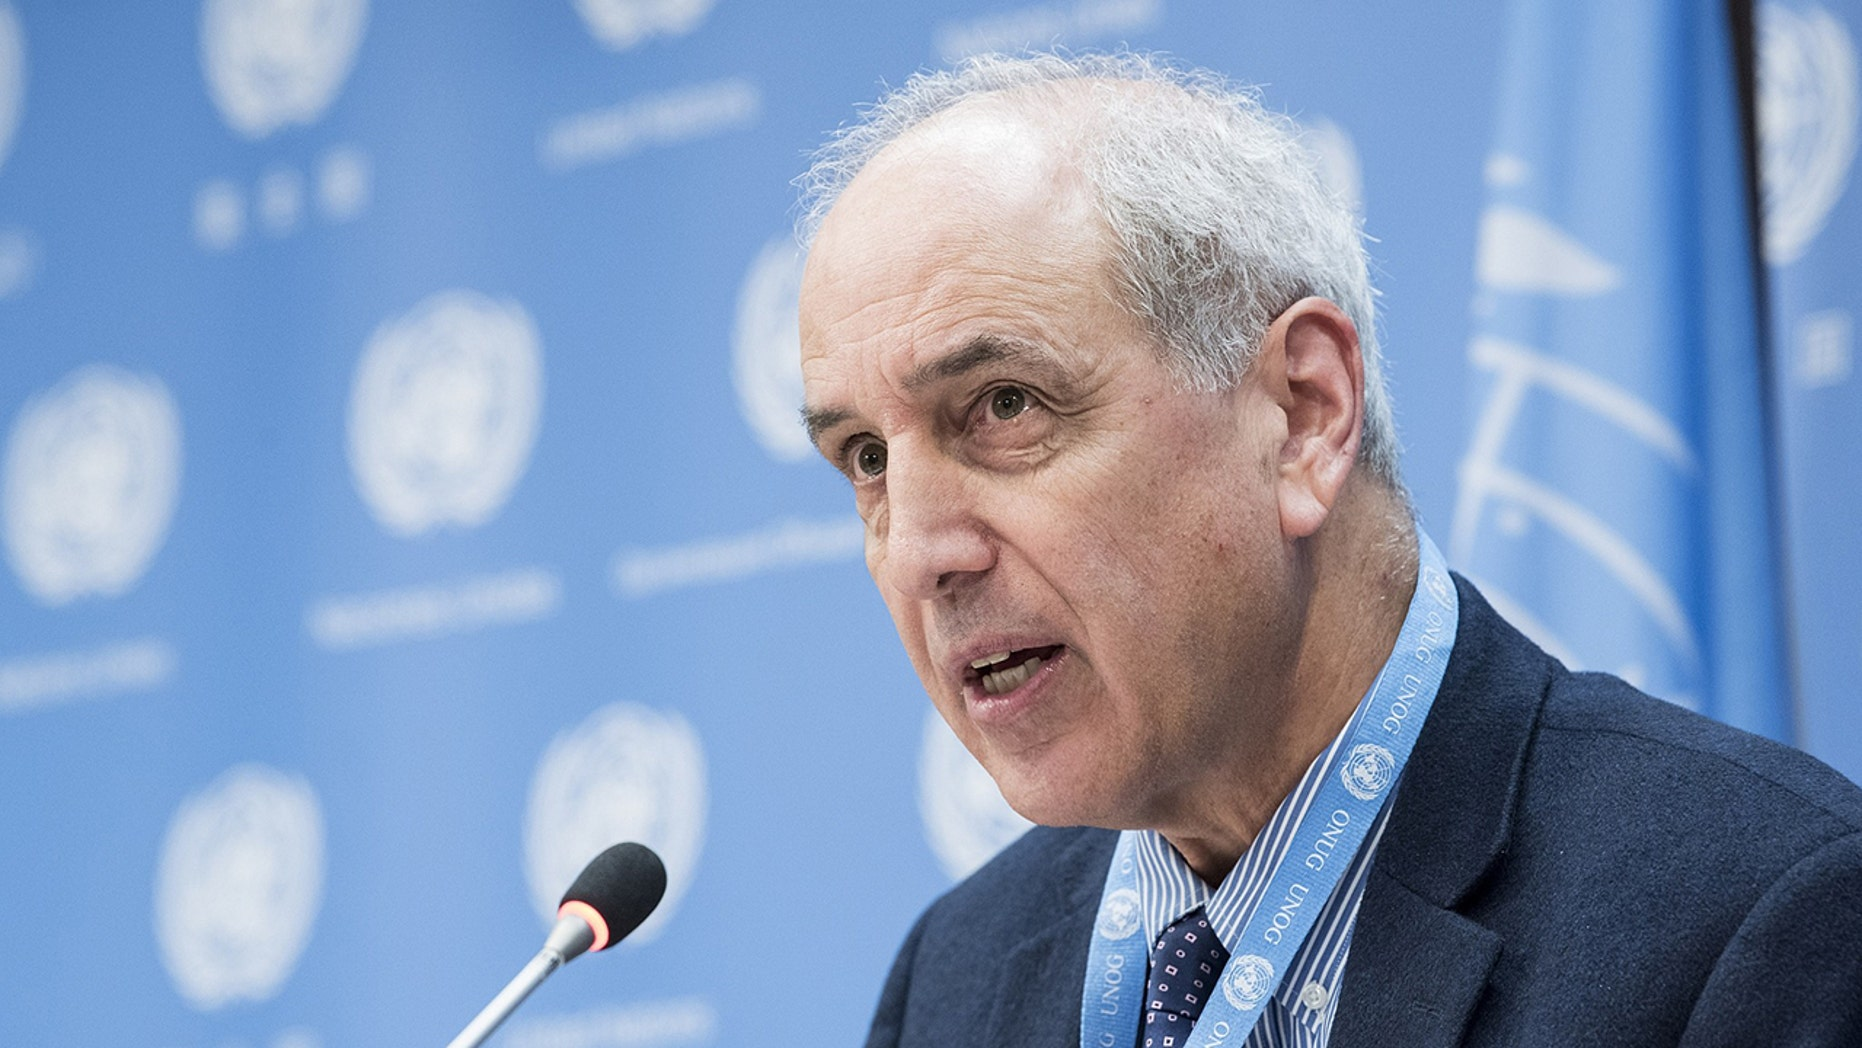 Michael Lynk is under fire for suggesting Israel could have its status as a UN member state suspended.